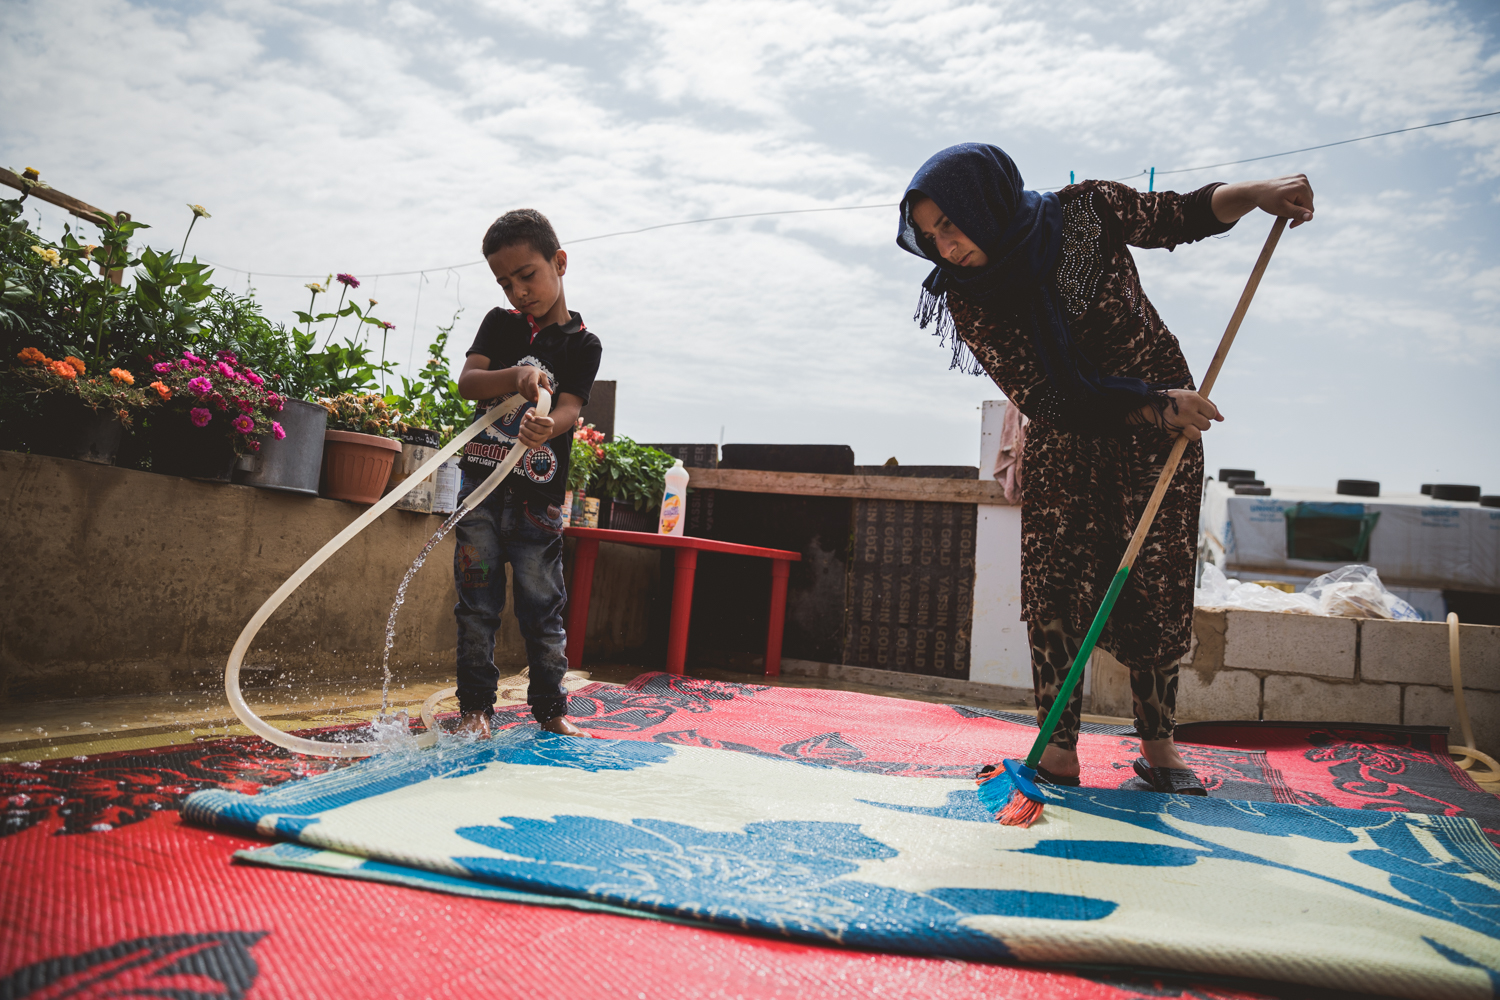 A young boy and his mother cleaning the rugs of their tent.